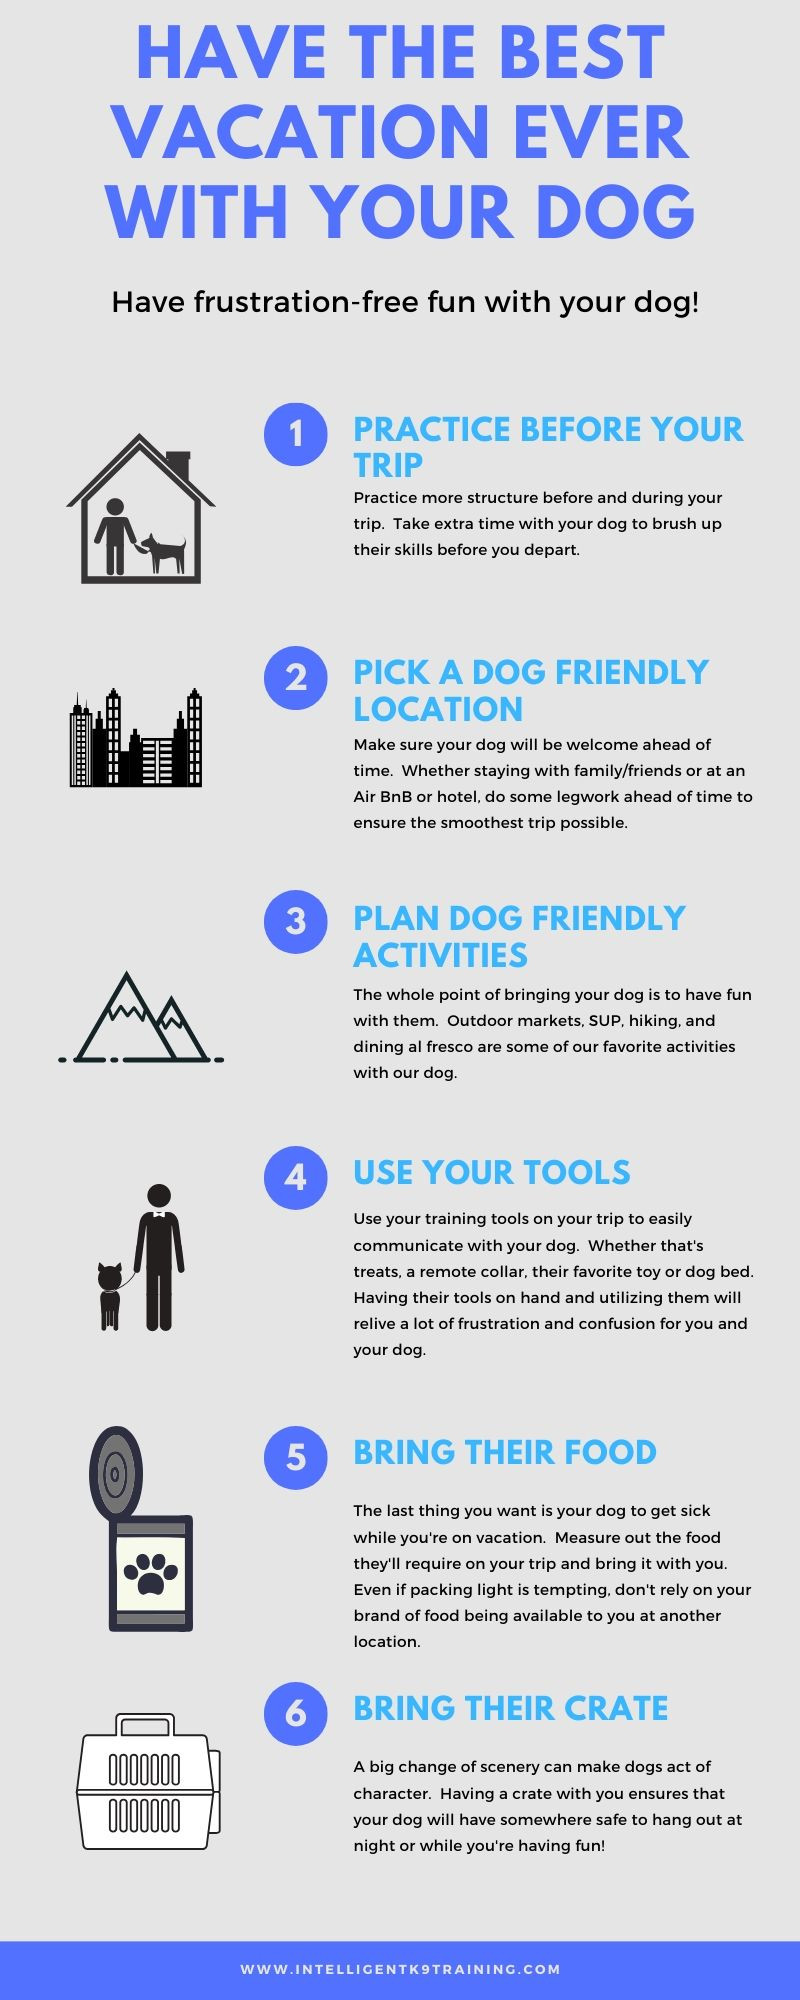 Infographic detailing how to have the best vacation with your dog